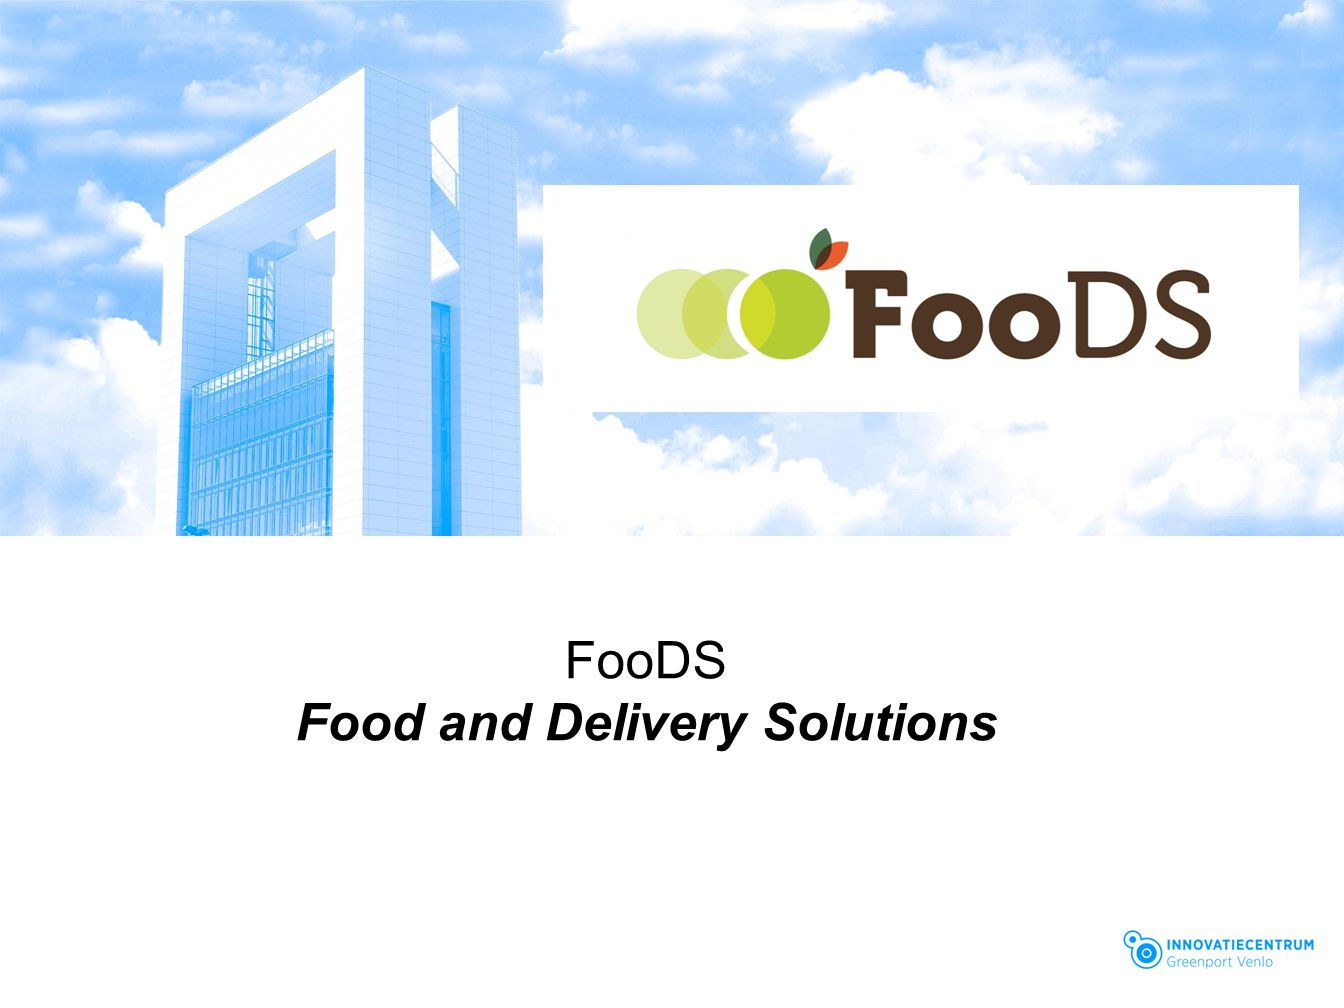 Food and Delivery Solutions